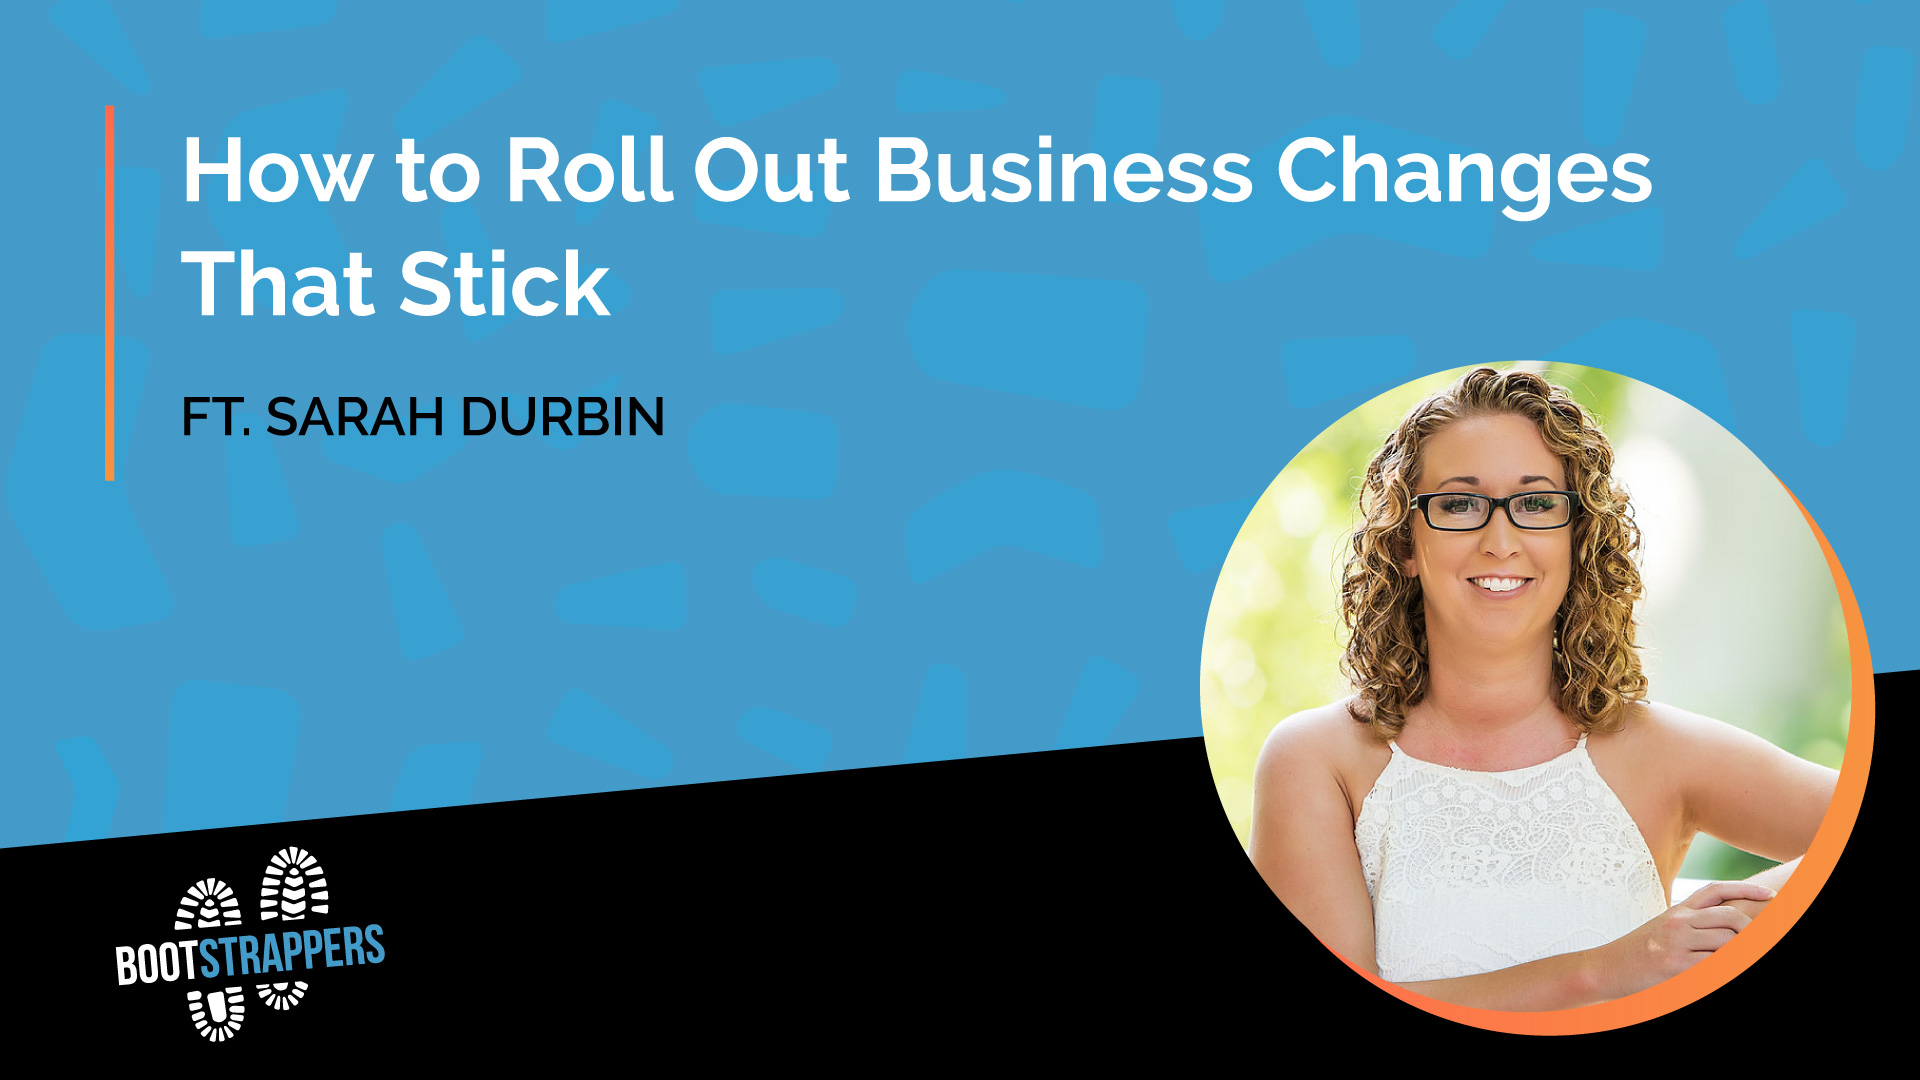 anequim-bootstrappers-how-to-roll-out-business-changes-sarah-durbin